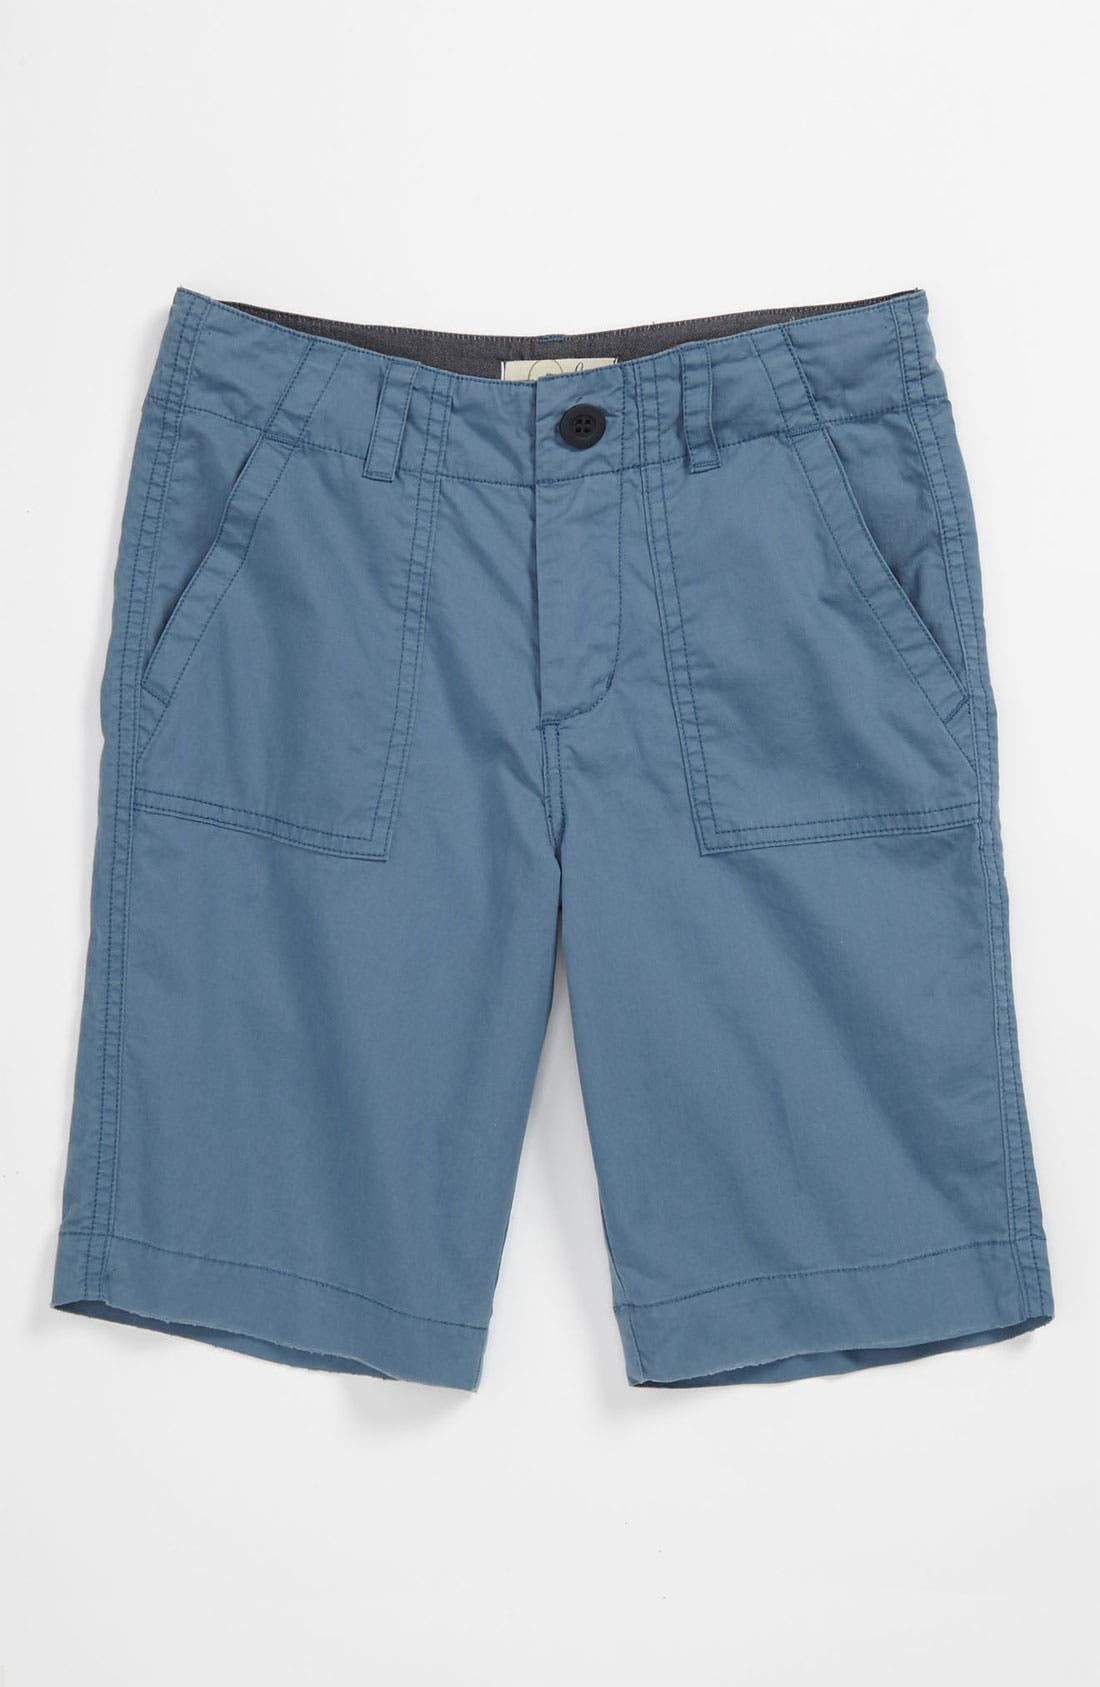 Alternate Image 1 Selected - Peek 'Jericho' Utility Shorts (Toddler Boys, Little Boys & Big Boys)